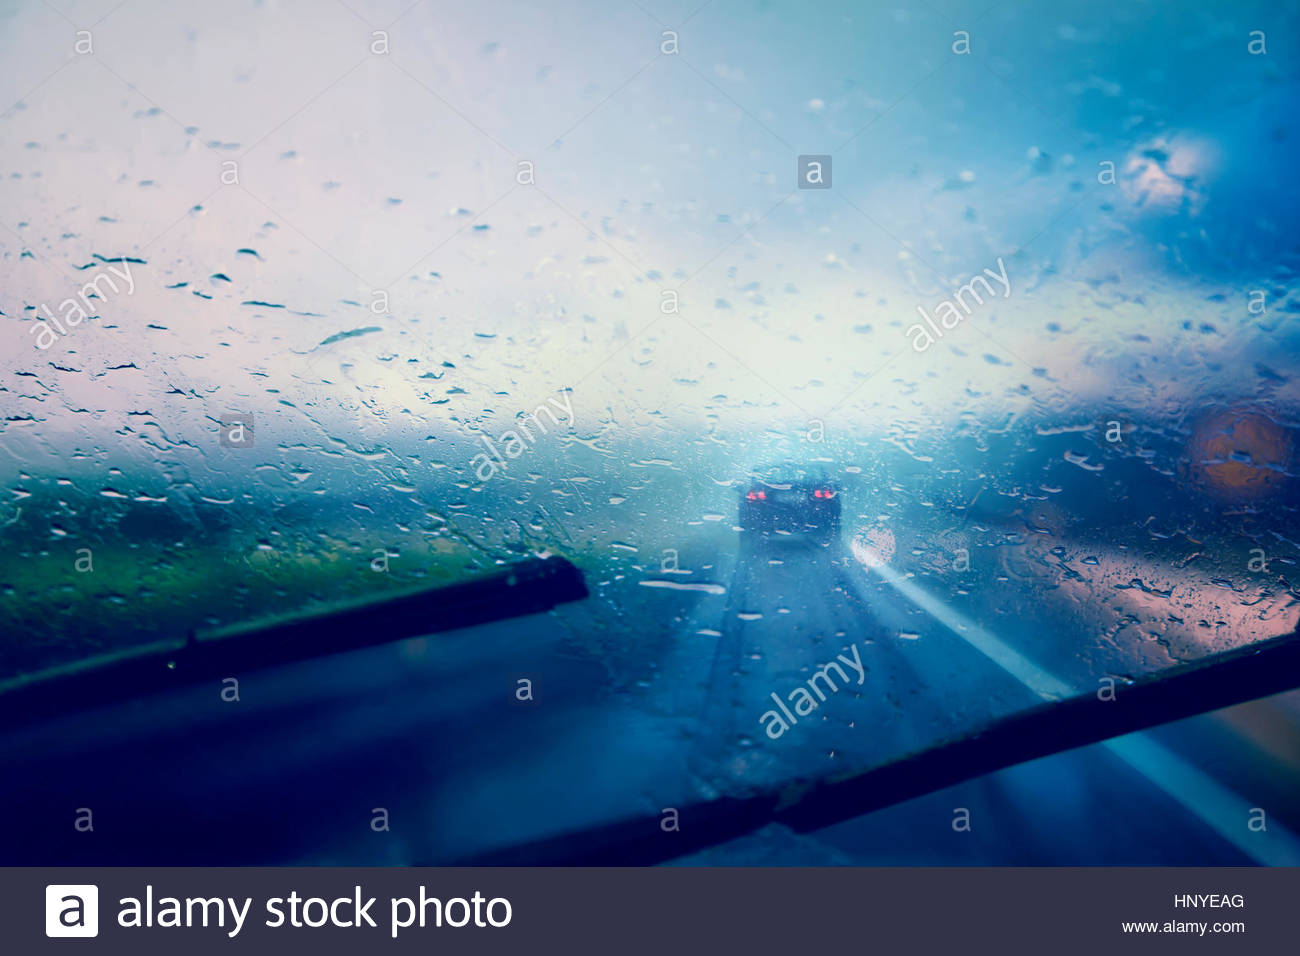 Dangerous vehicle driving in the heavy rainy and slippery road. Raindrops on windshield of moving car on highway. - Stock Image